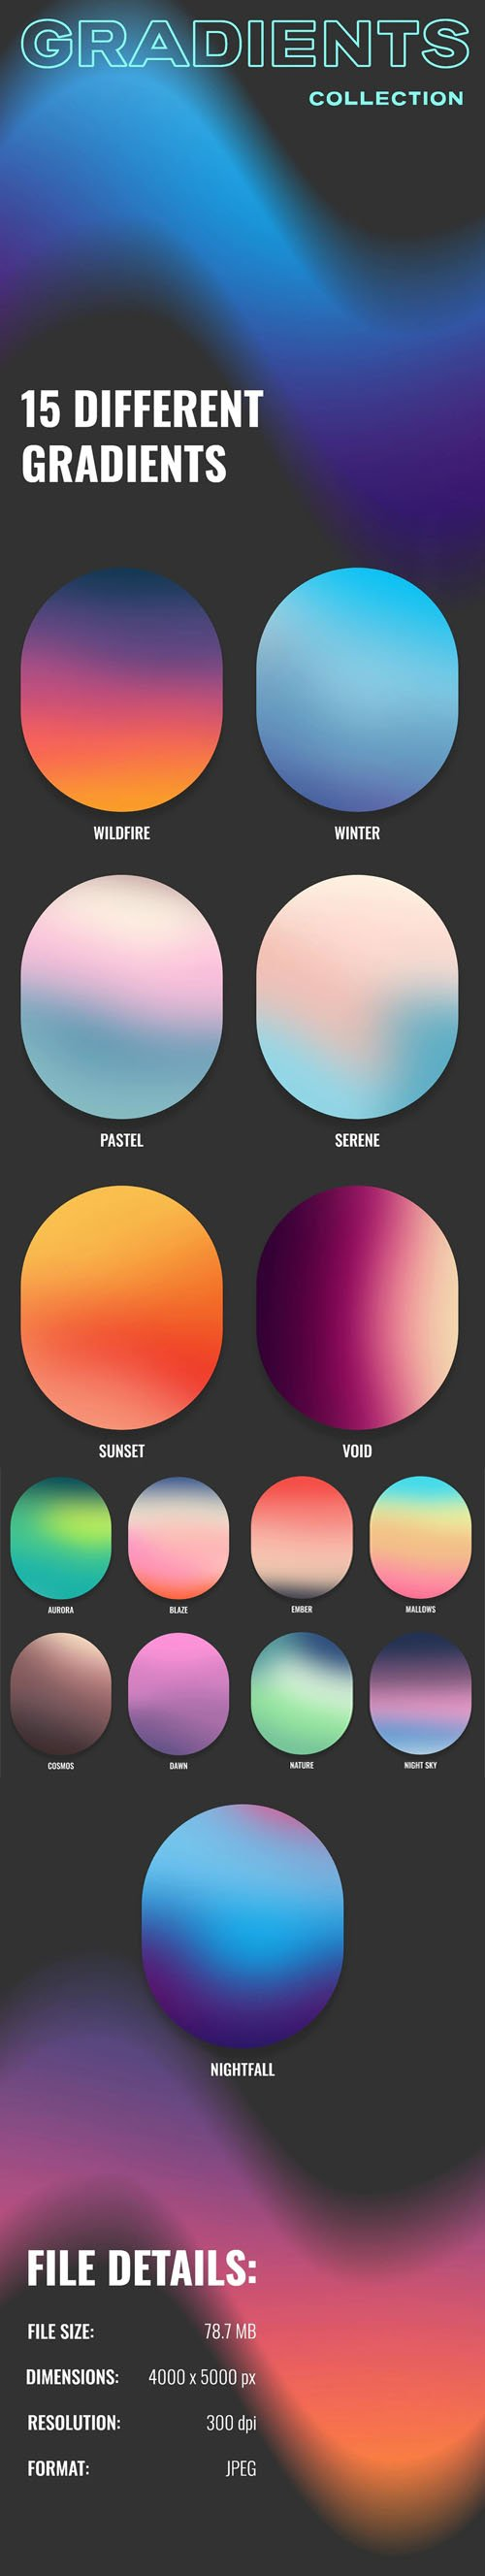 15 Different Gradients Pack